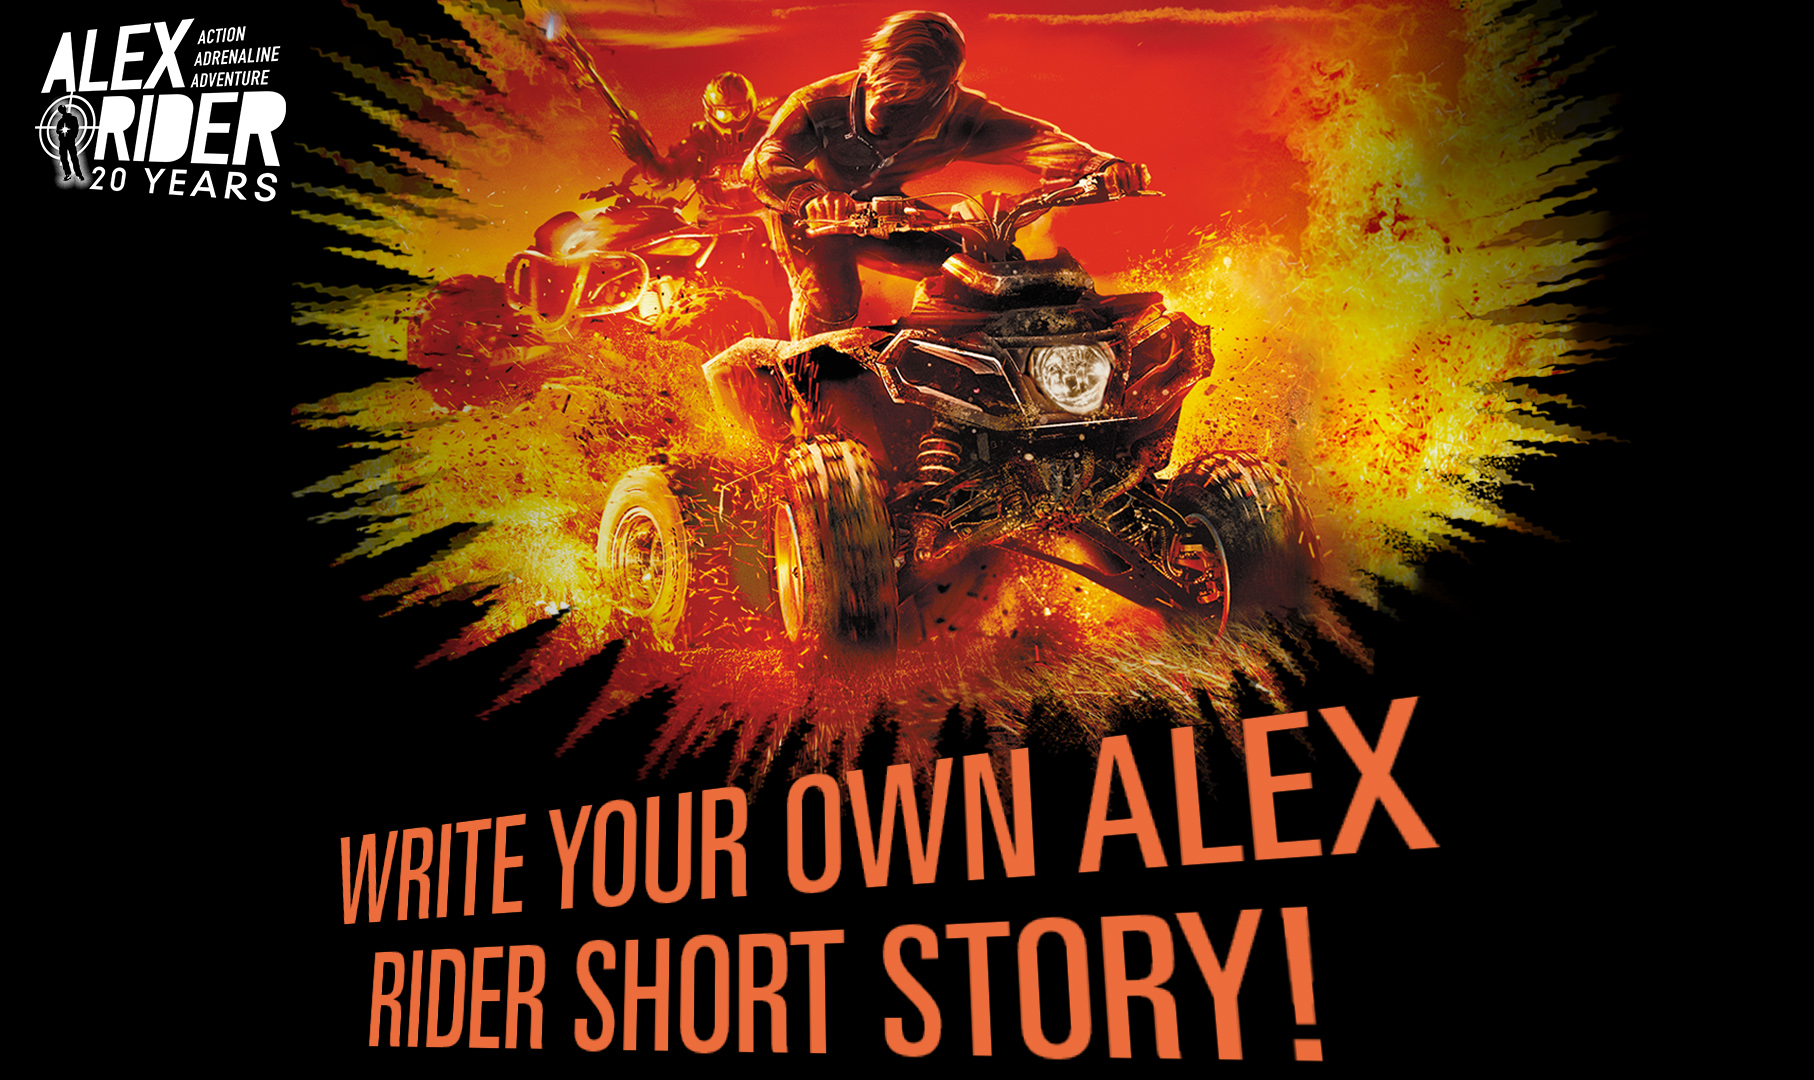 Write Your Own Alex Rider Short Story